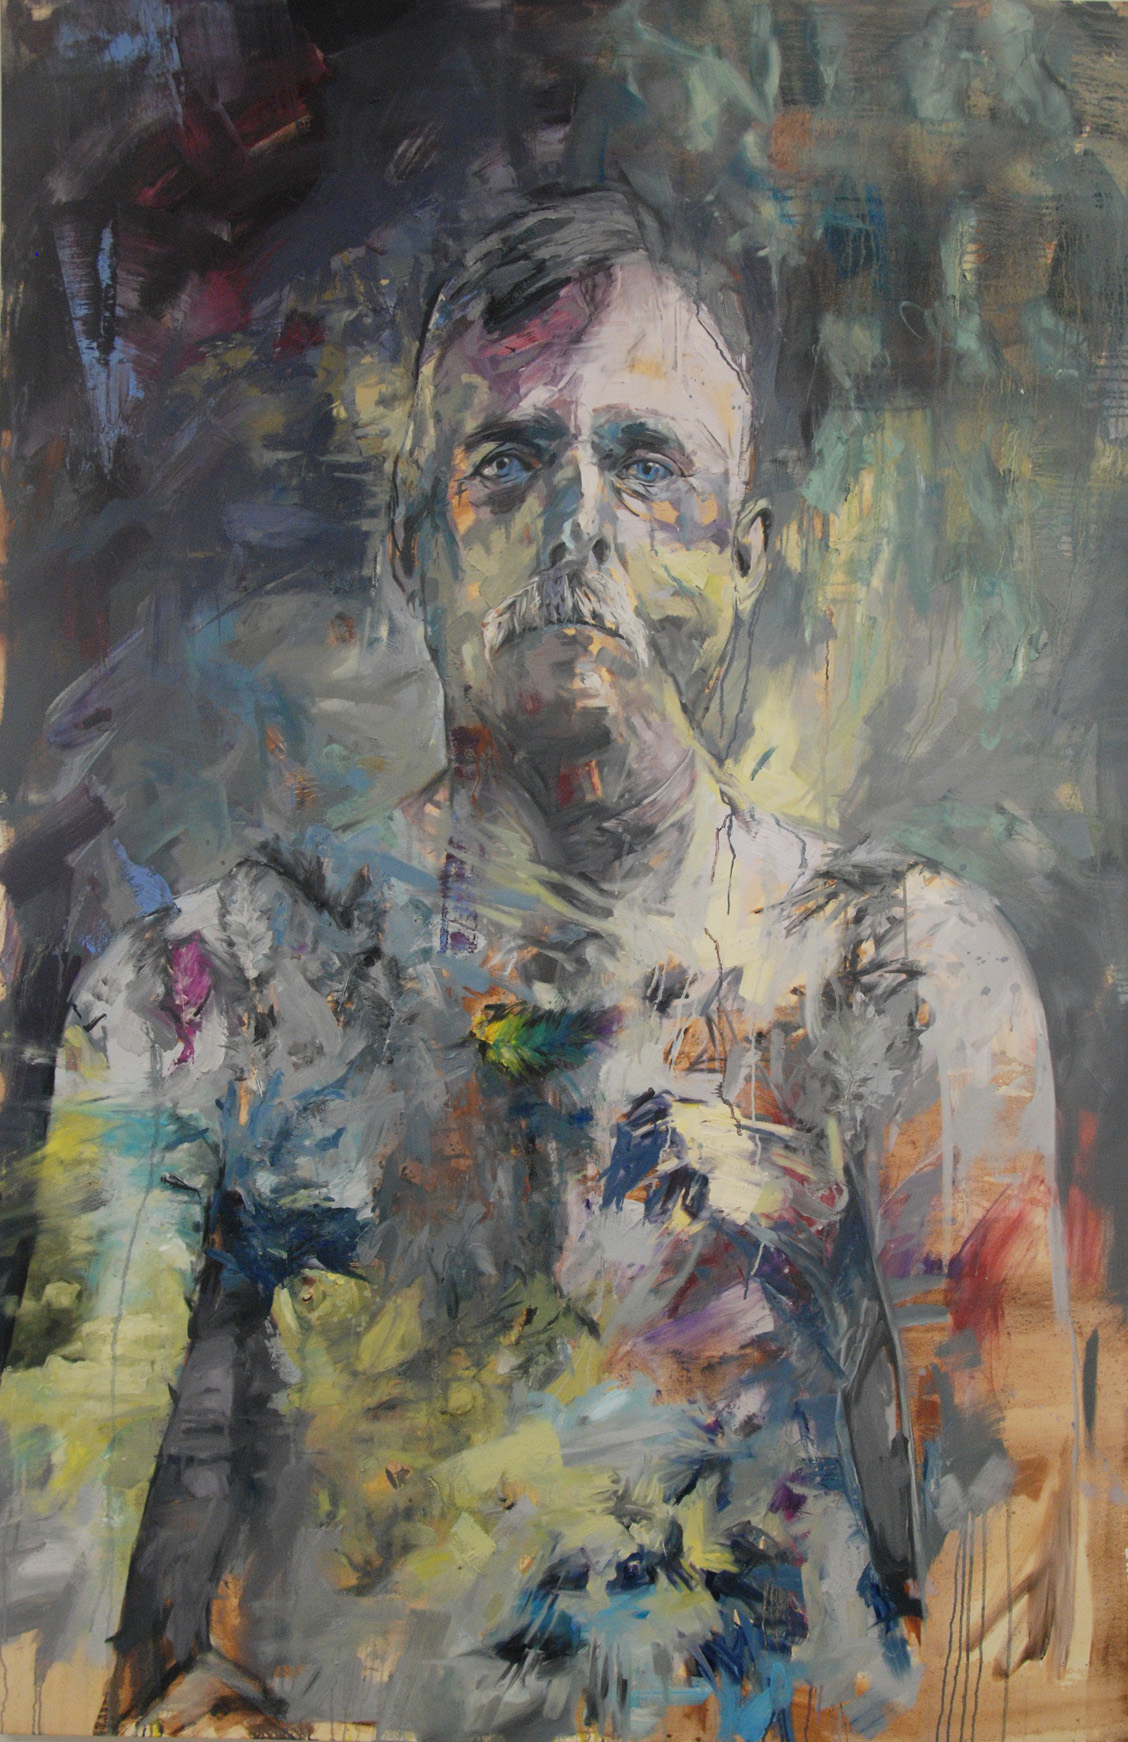 Untitle, Oil, Tar and Feathers, 210cm x140cm